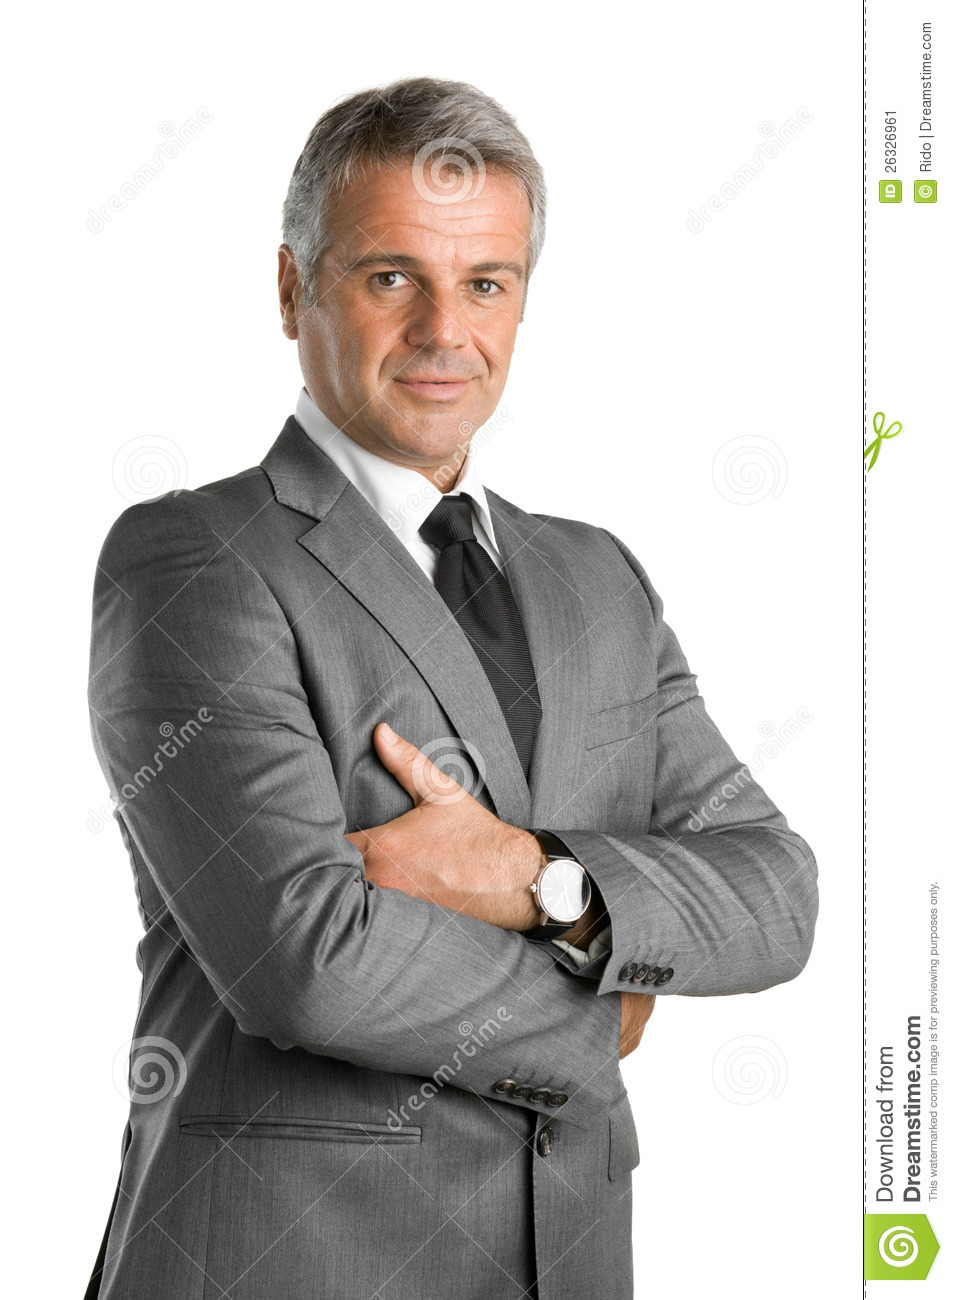 satisfied-business-man-26326961.jpg